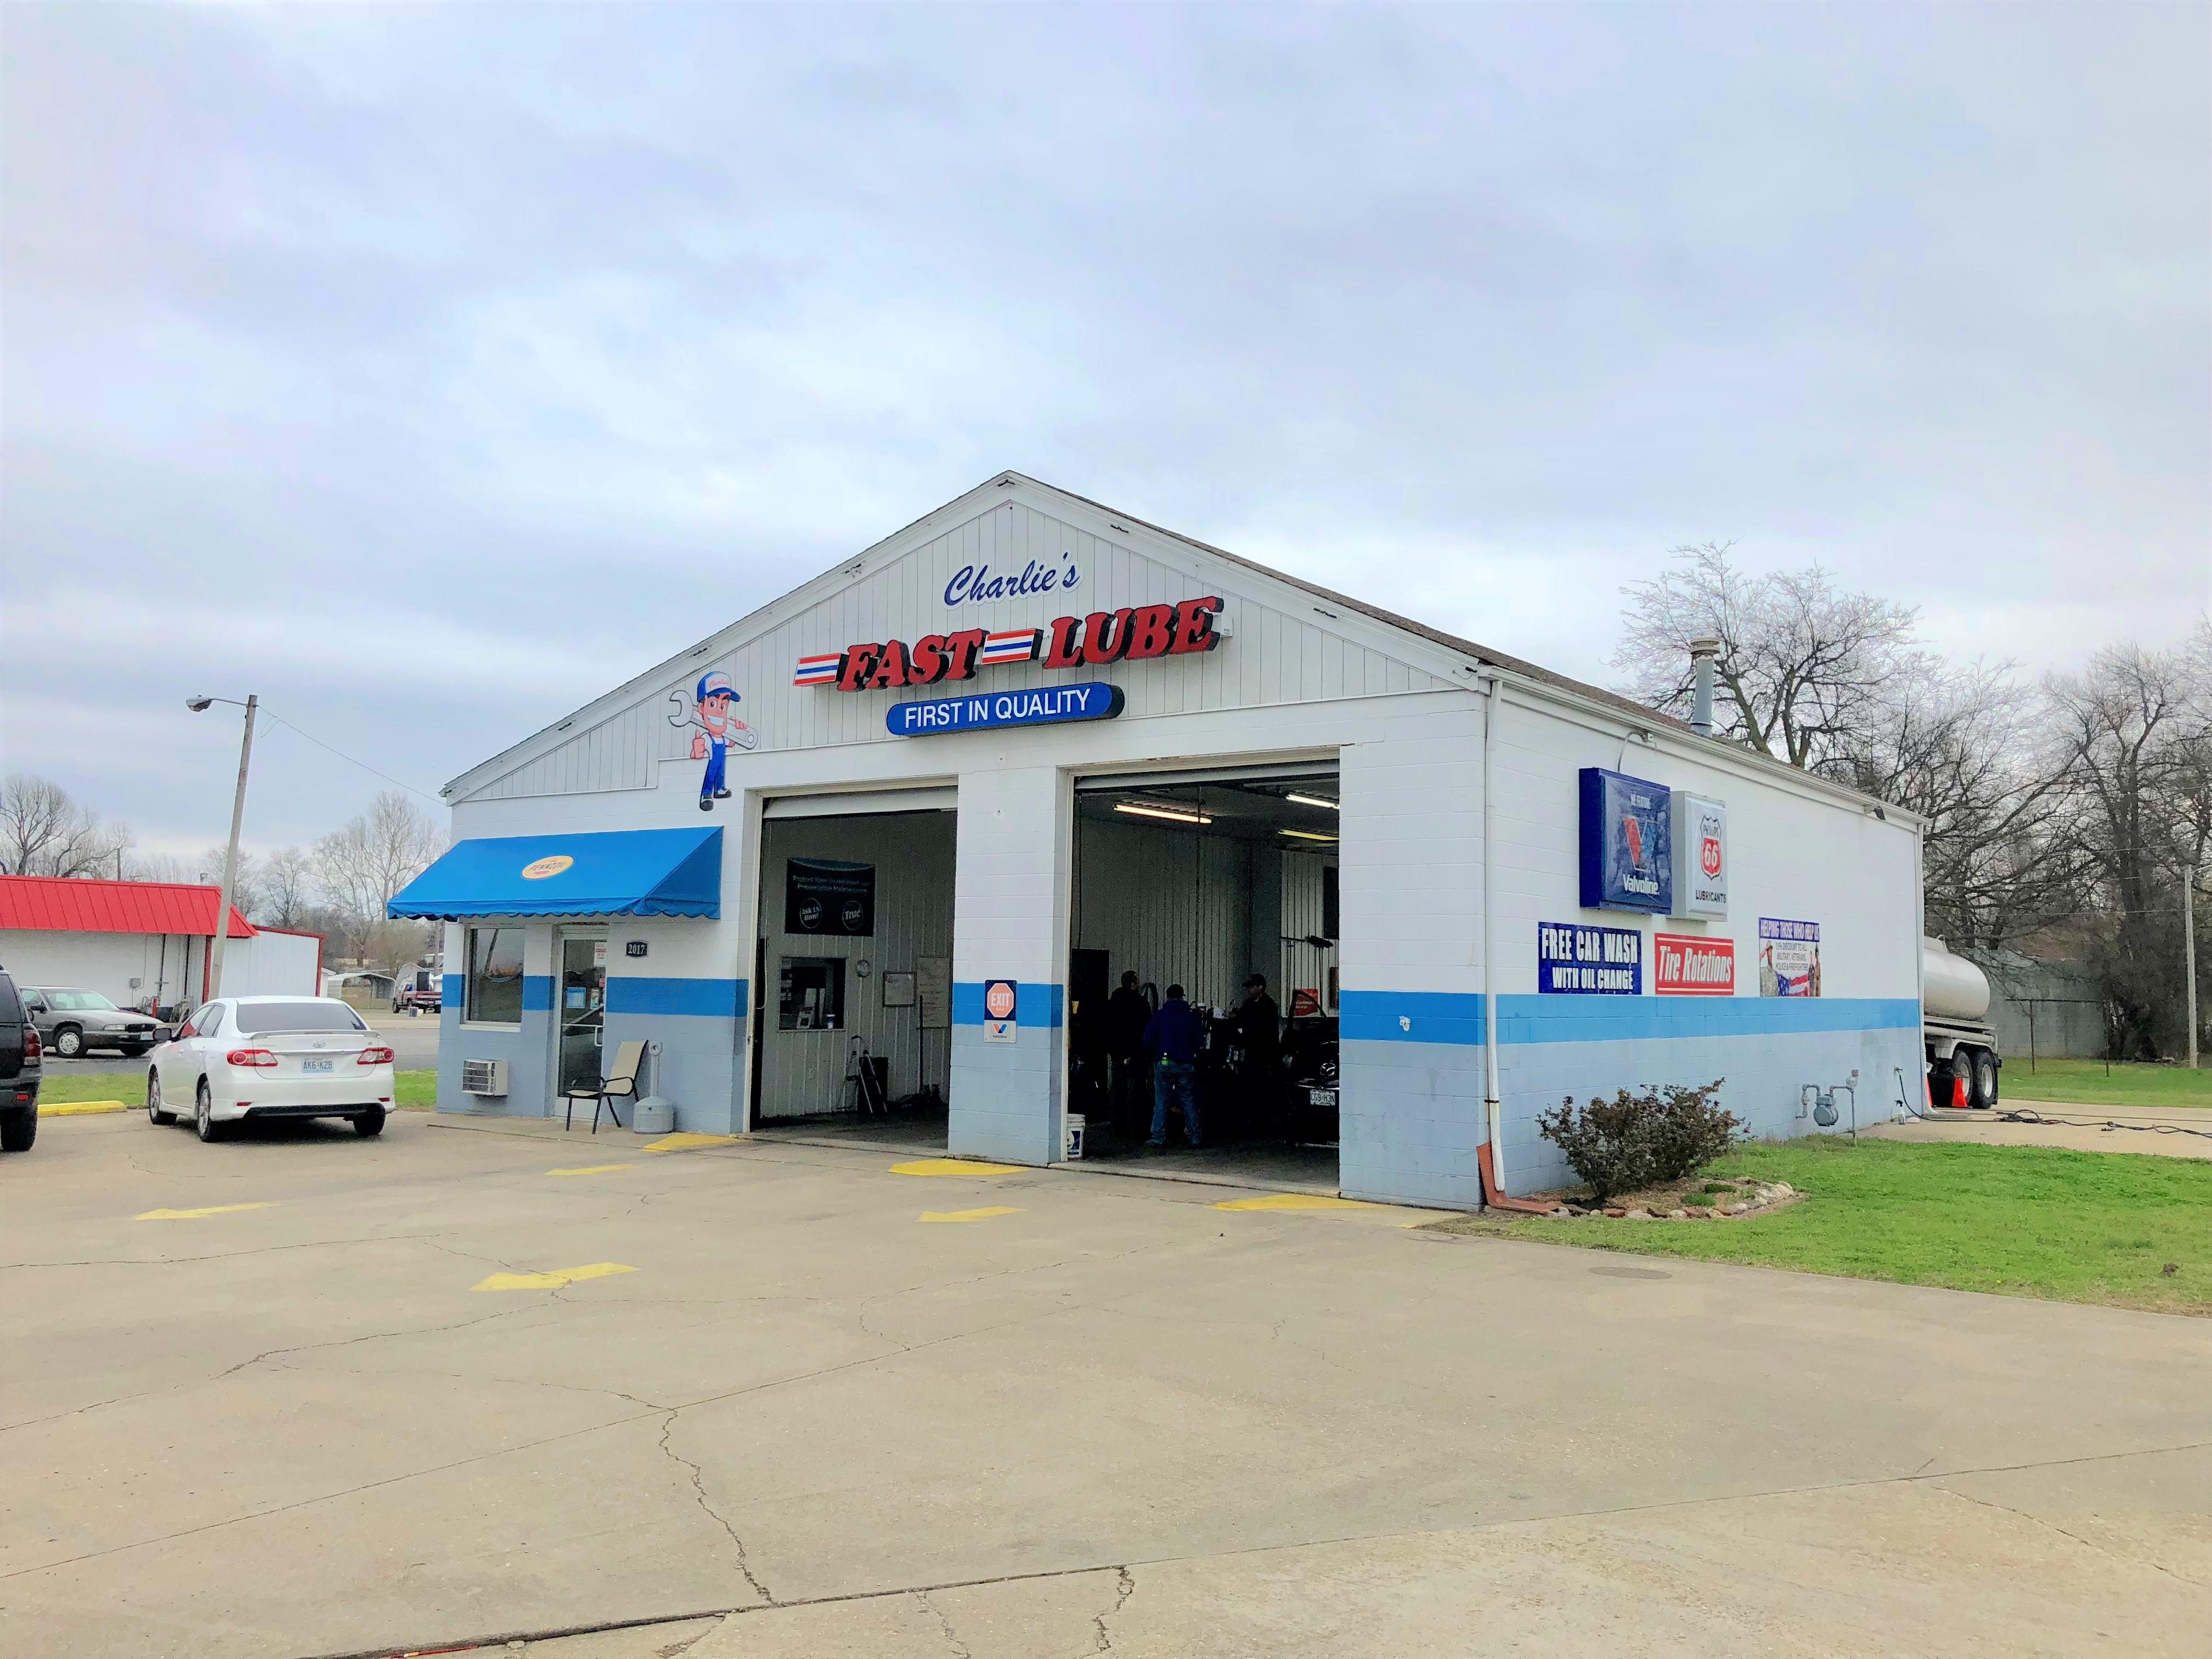 Charlie's Fast Lube Oil Change - Sikeston, MO image 0